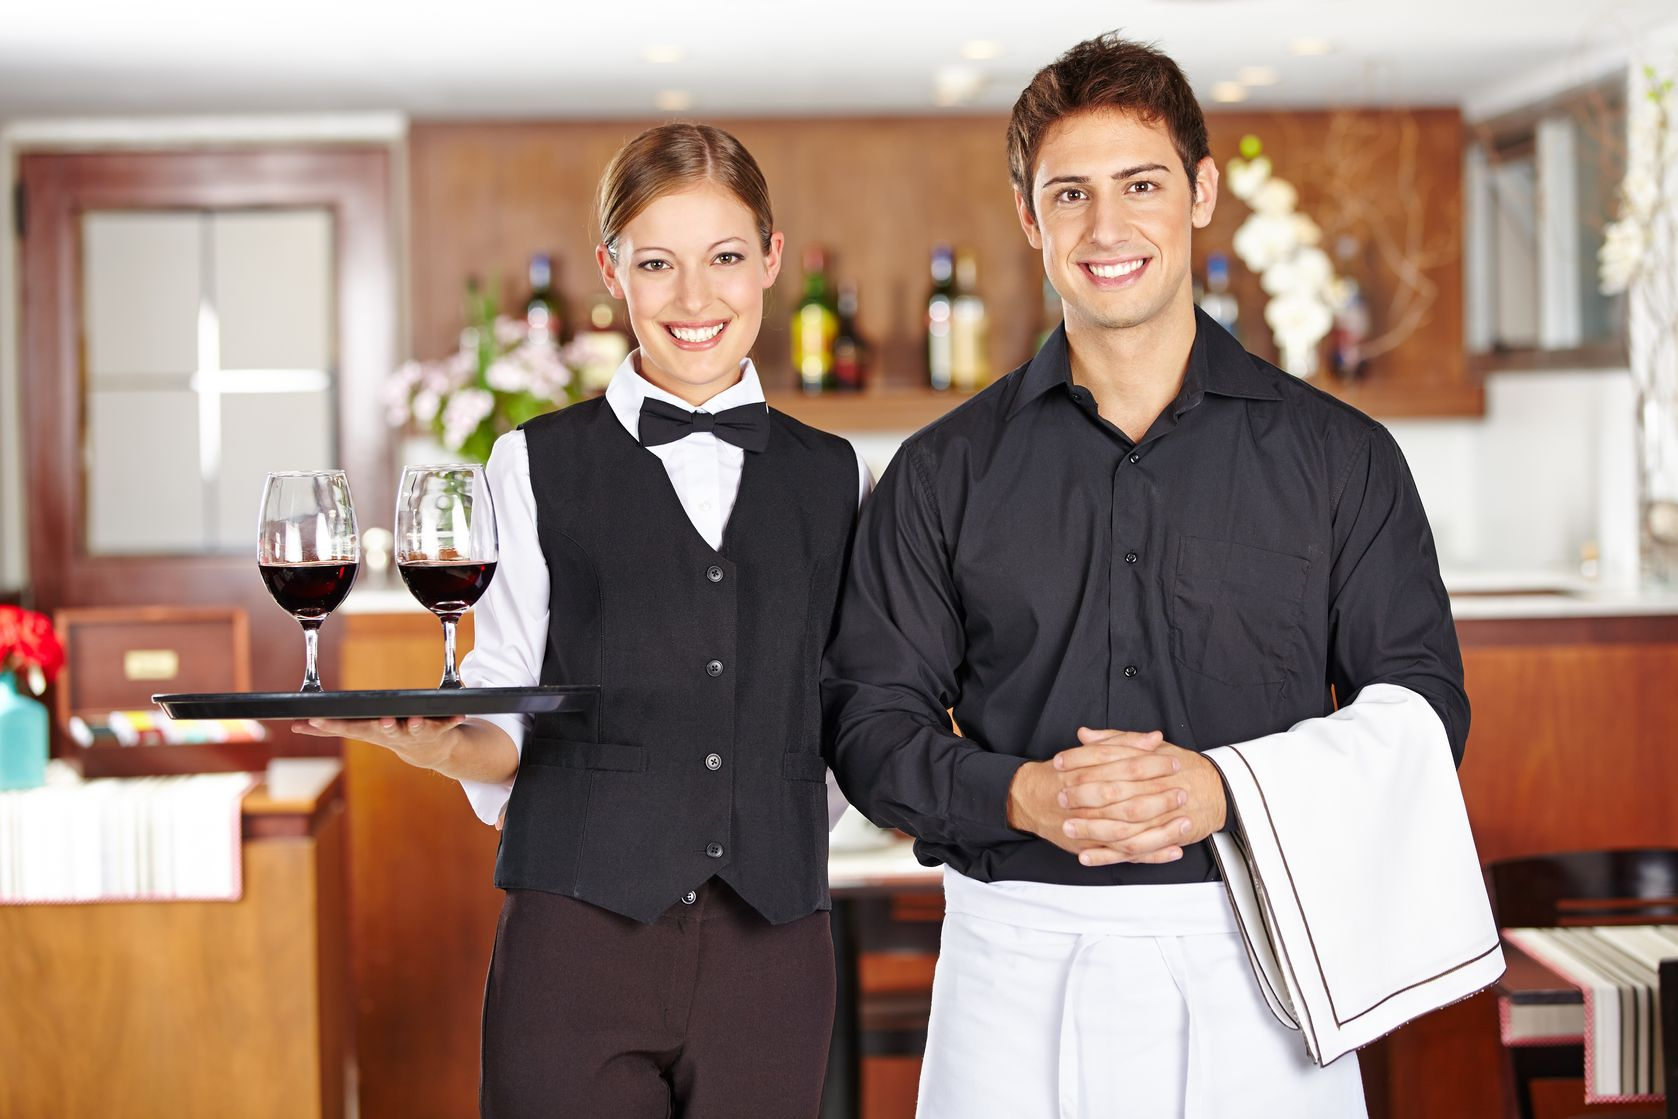 Hospitality and Catering Business for sale in Ipswich